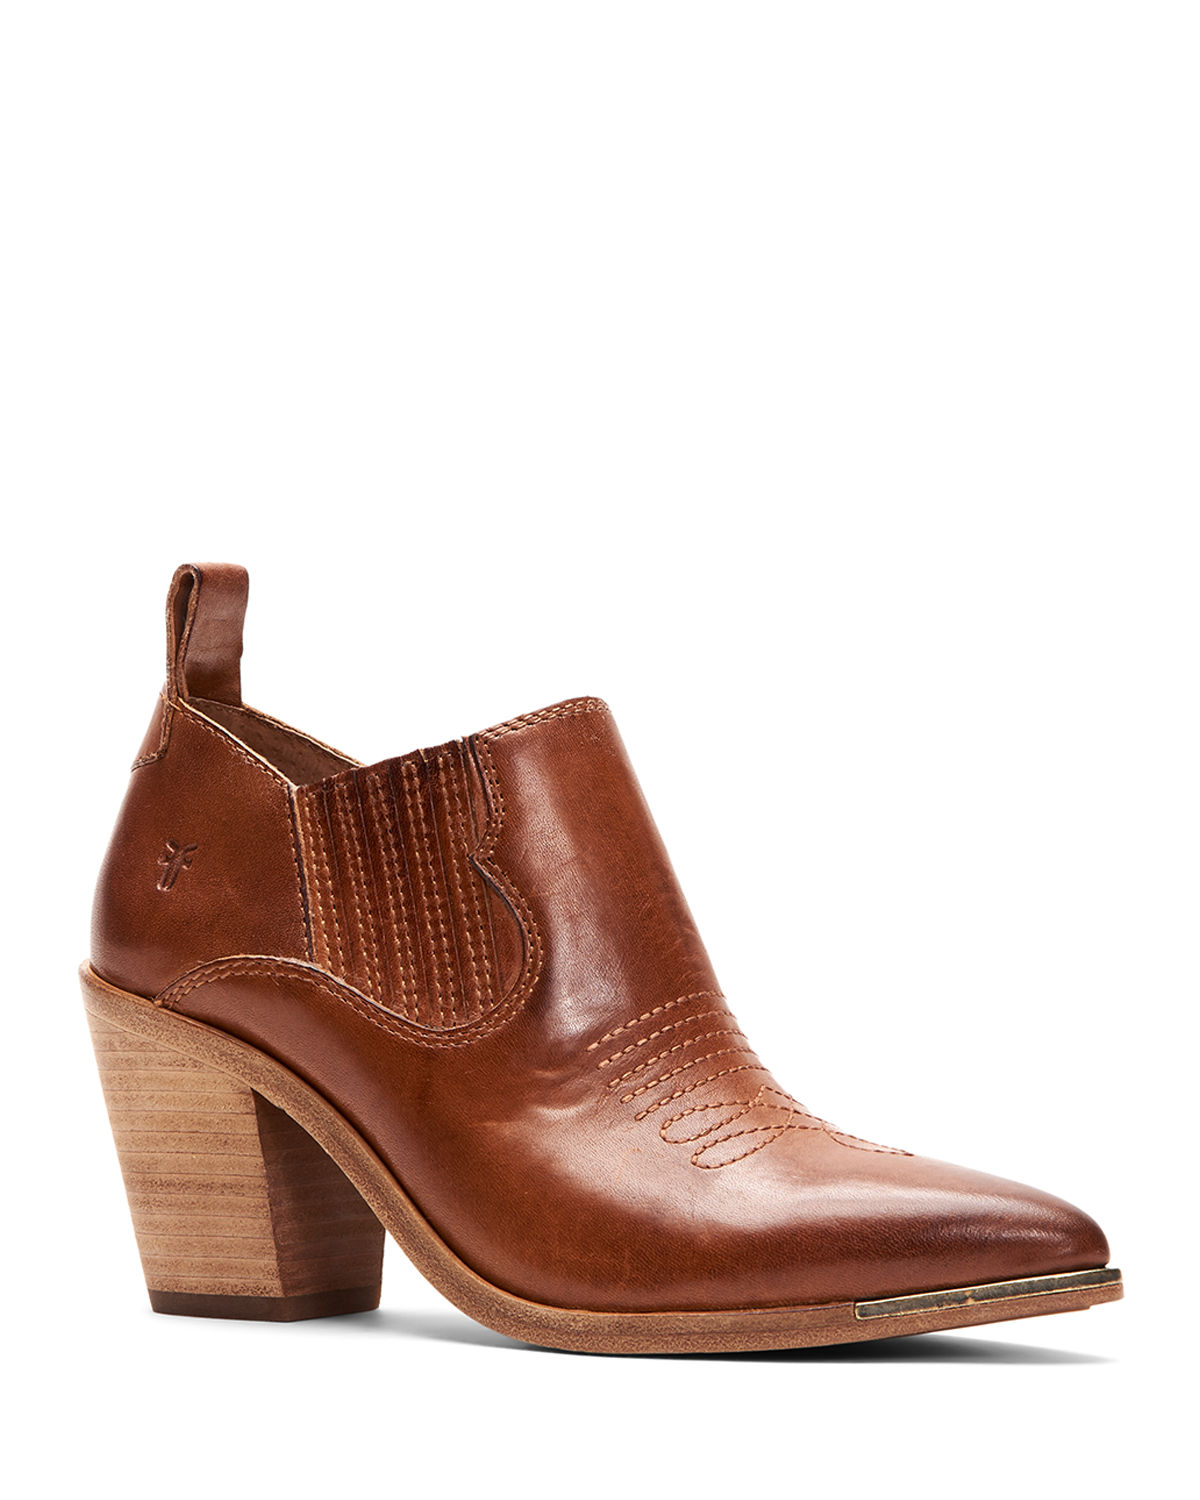 Frye Boots FAYE LEATHER ANKLE BOOTIES